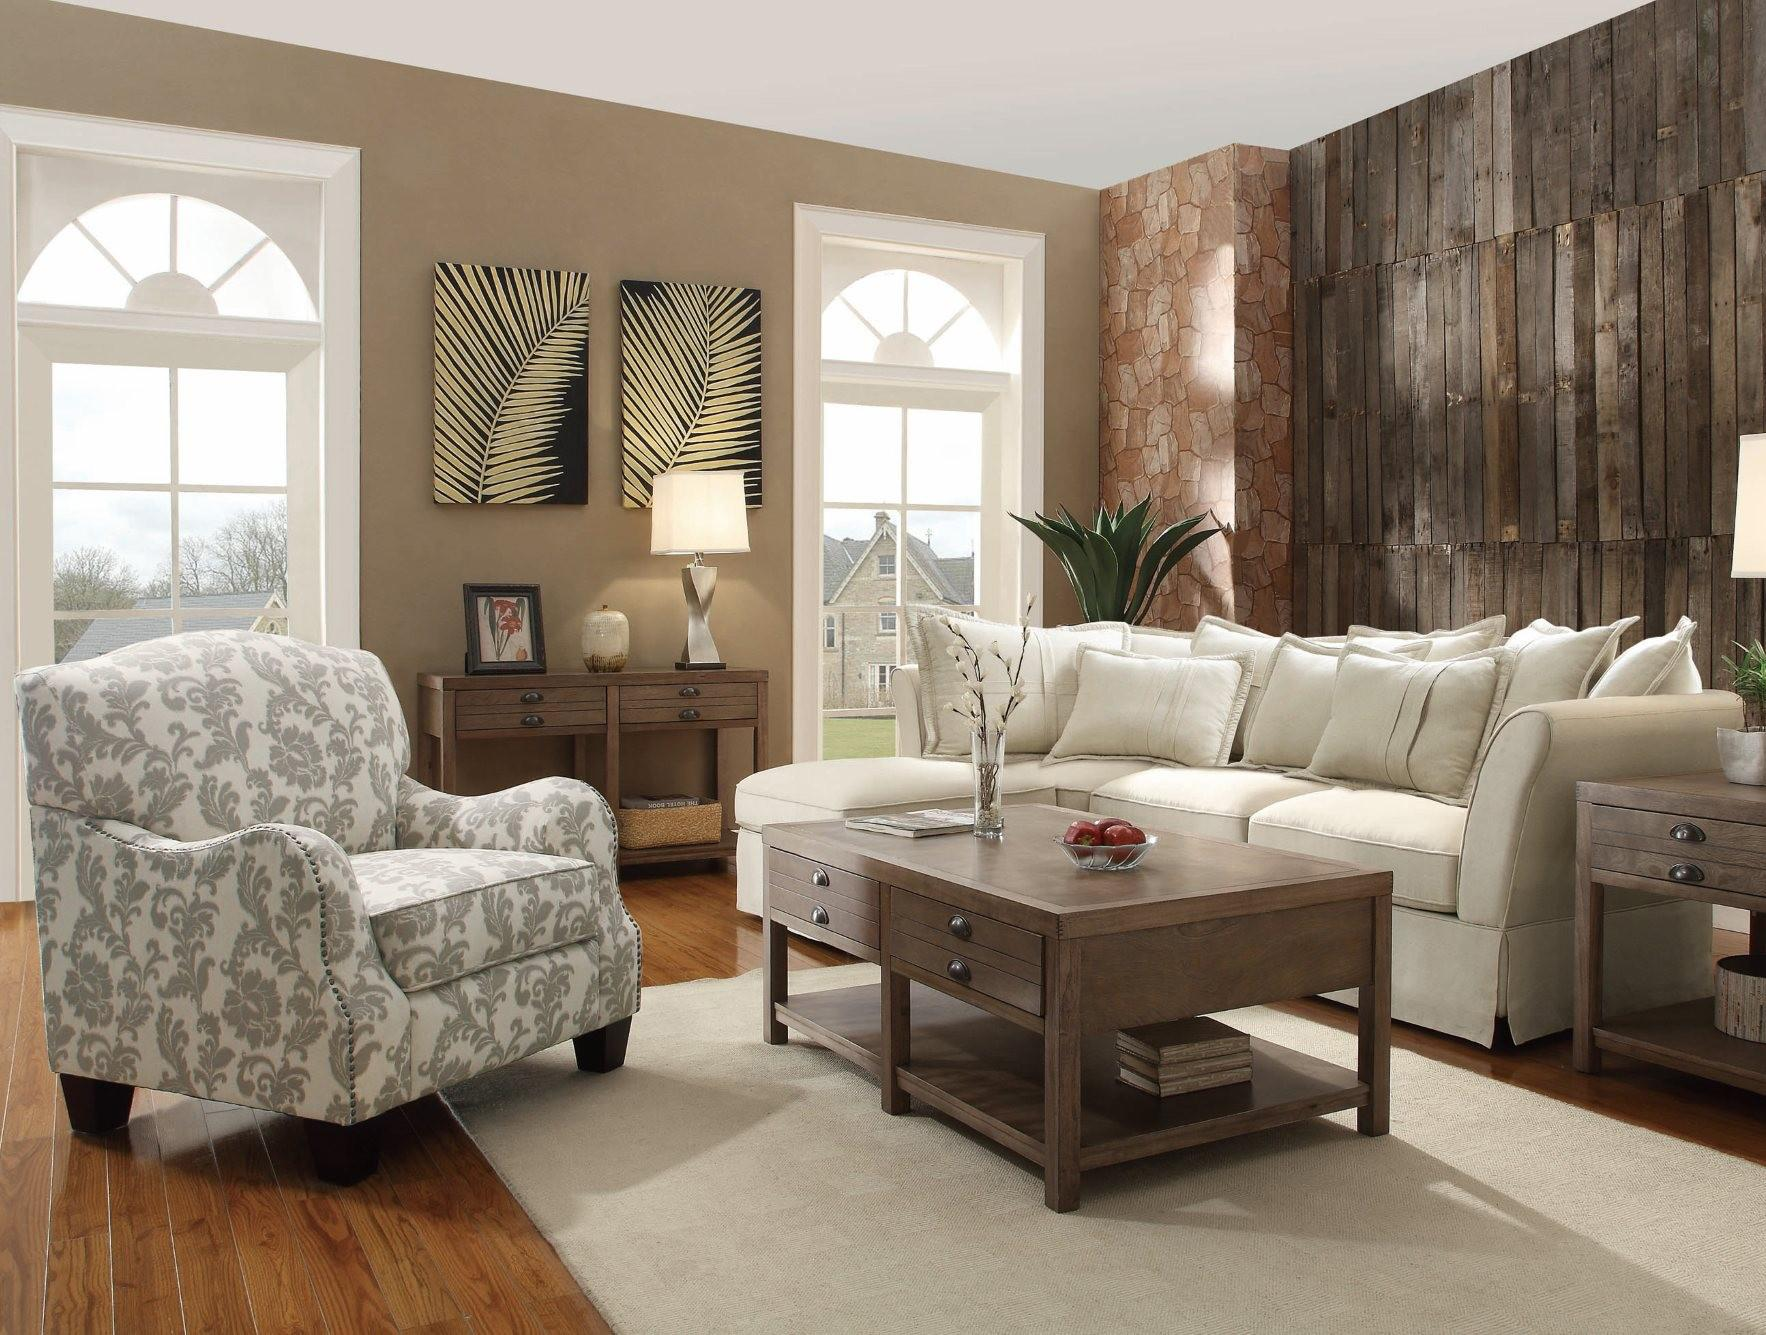 chairs and bedroom furniture colors meaning home brown chests accent martin cabinets albany bobs goods ont master coaster living cabinet white lalonde rockland definition room mea